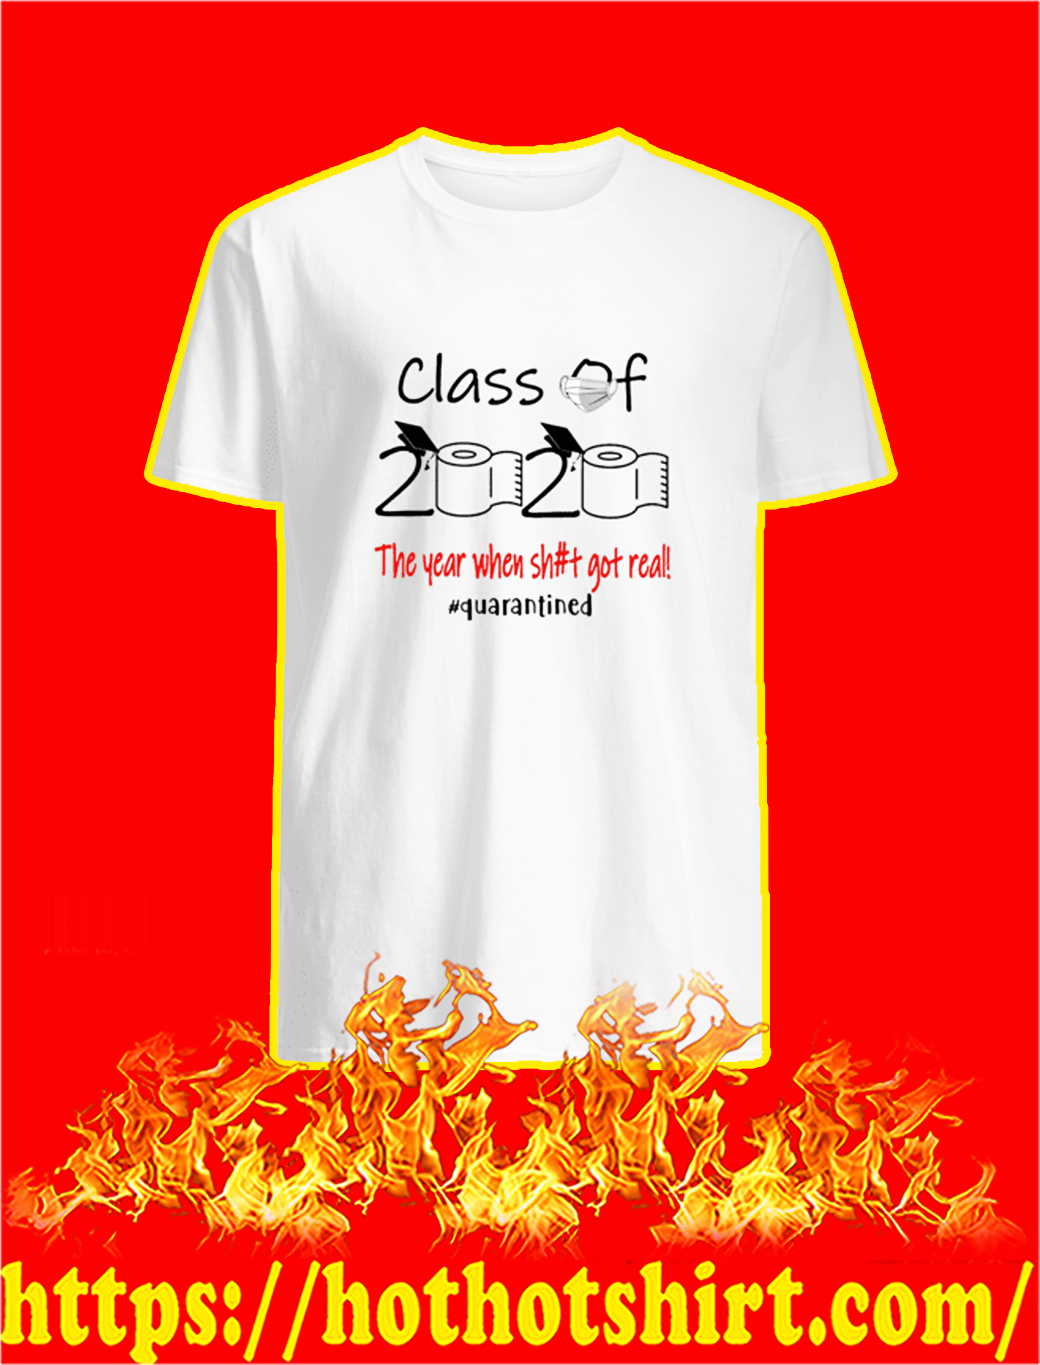 Class of 2020 the year when shit got real quarantined shirtClass of 2020 the year when shit got real quarantined shirt